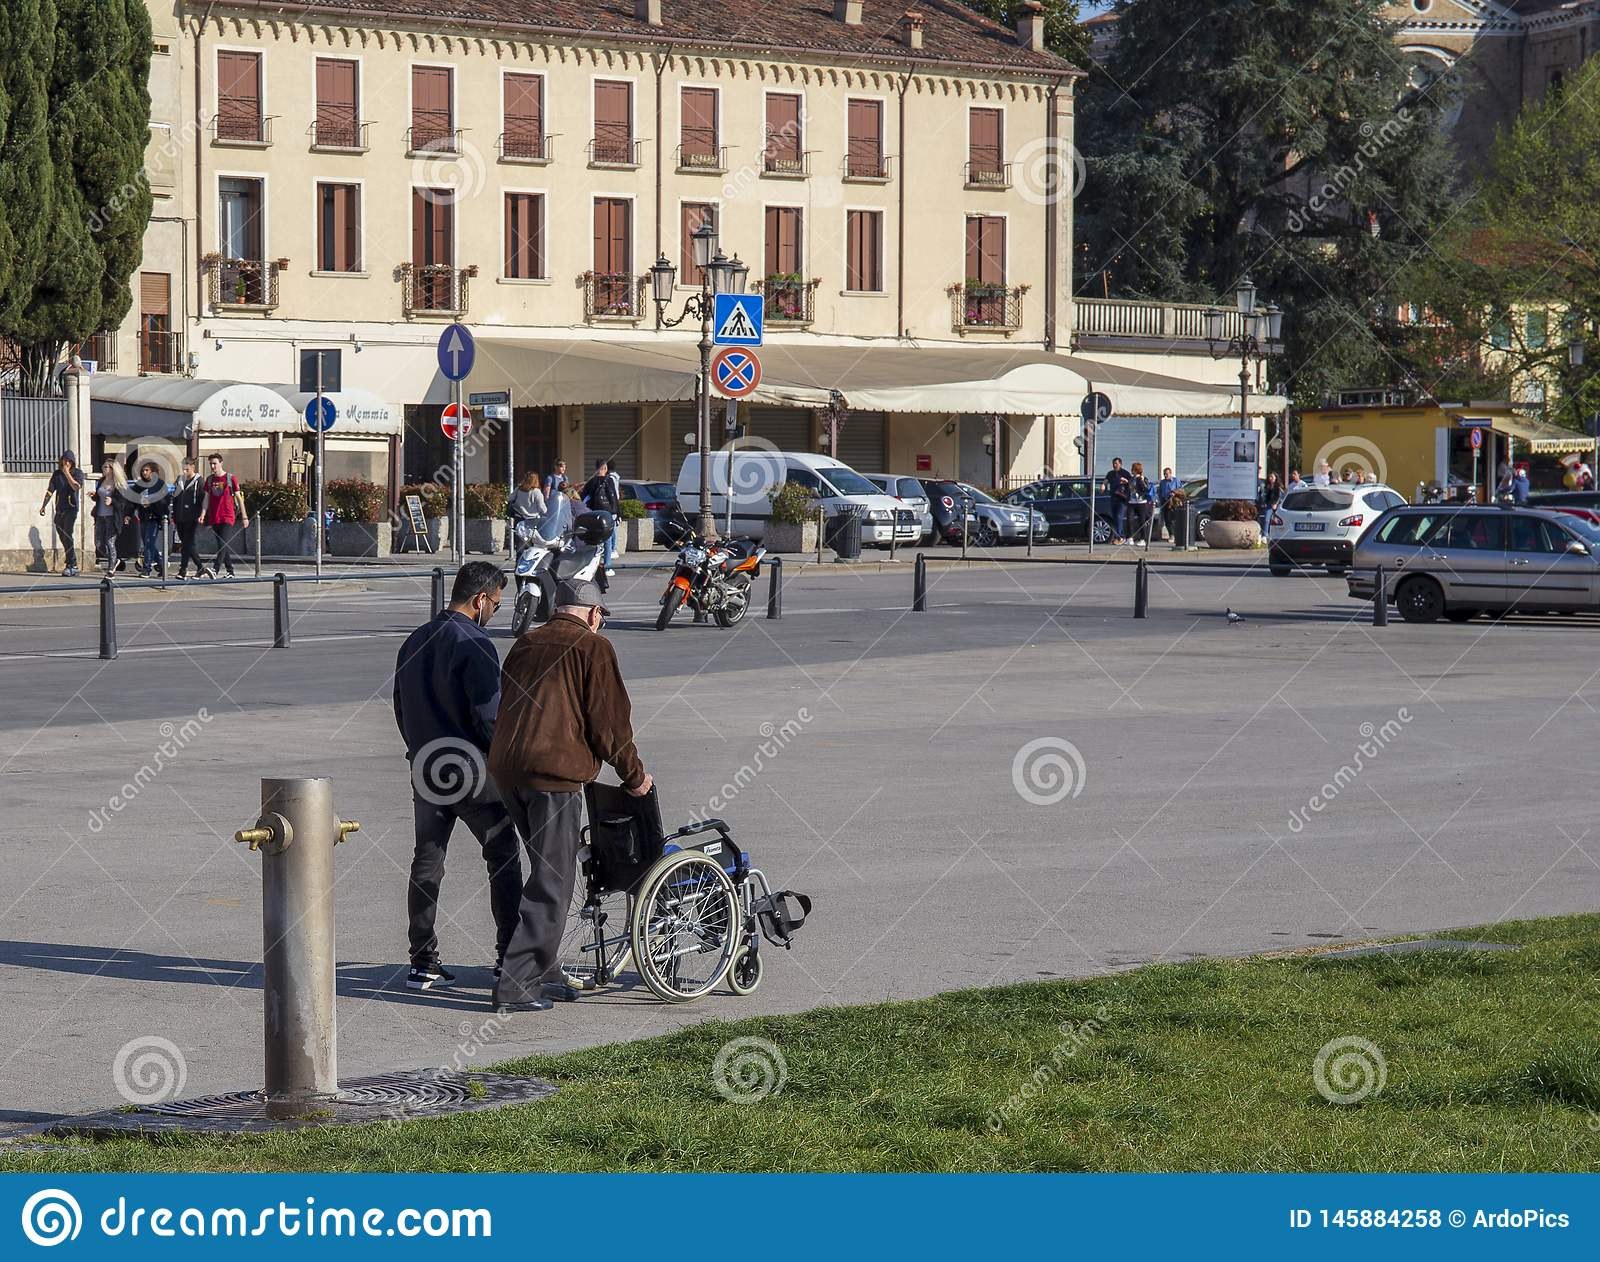 Elderly man helped by a boy, he pushes the wheelchair